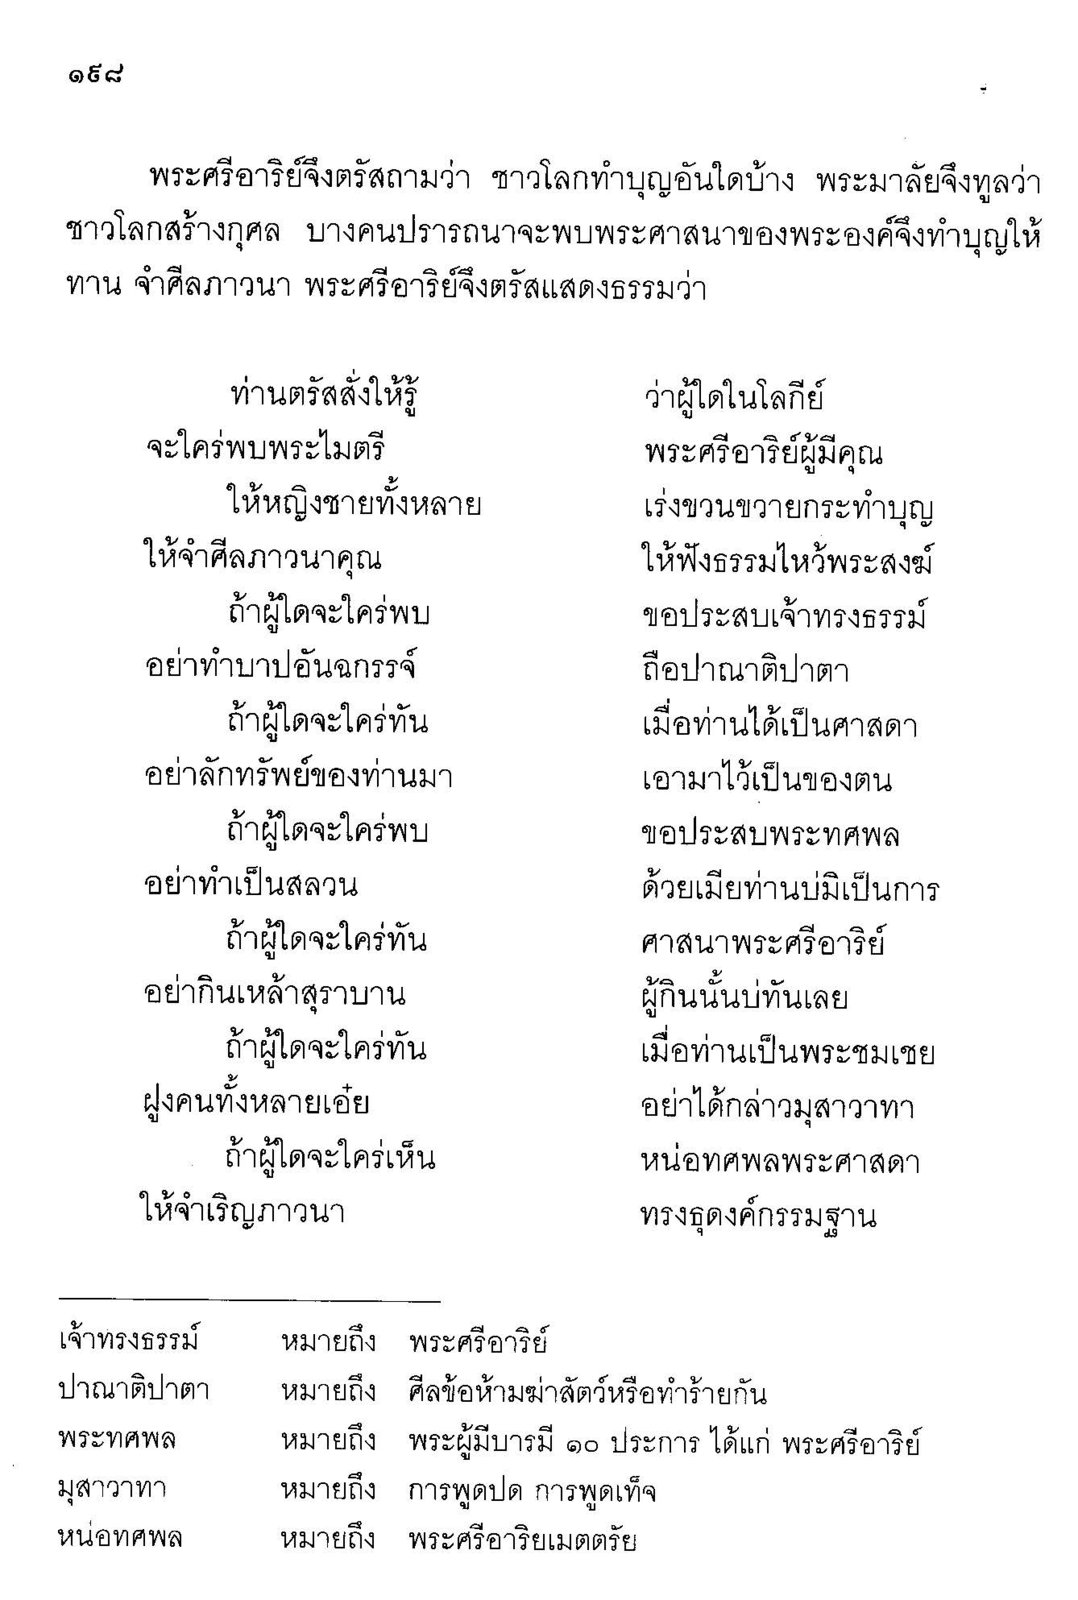 ebook_thai_sect_2_65-990_Page_206.jpg